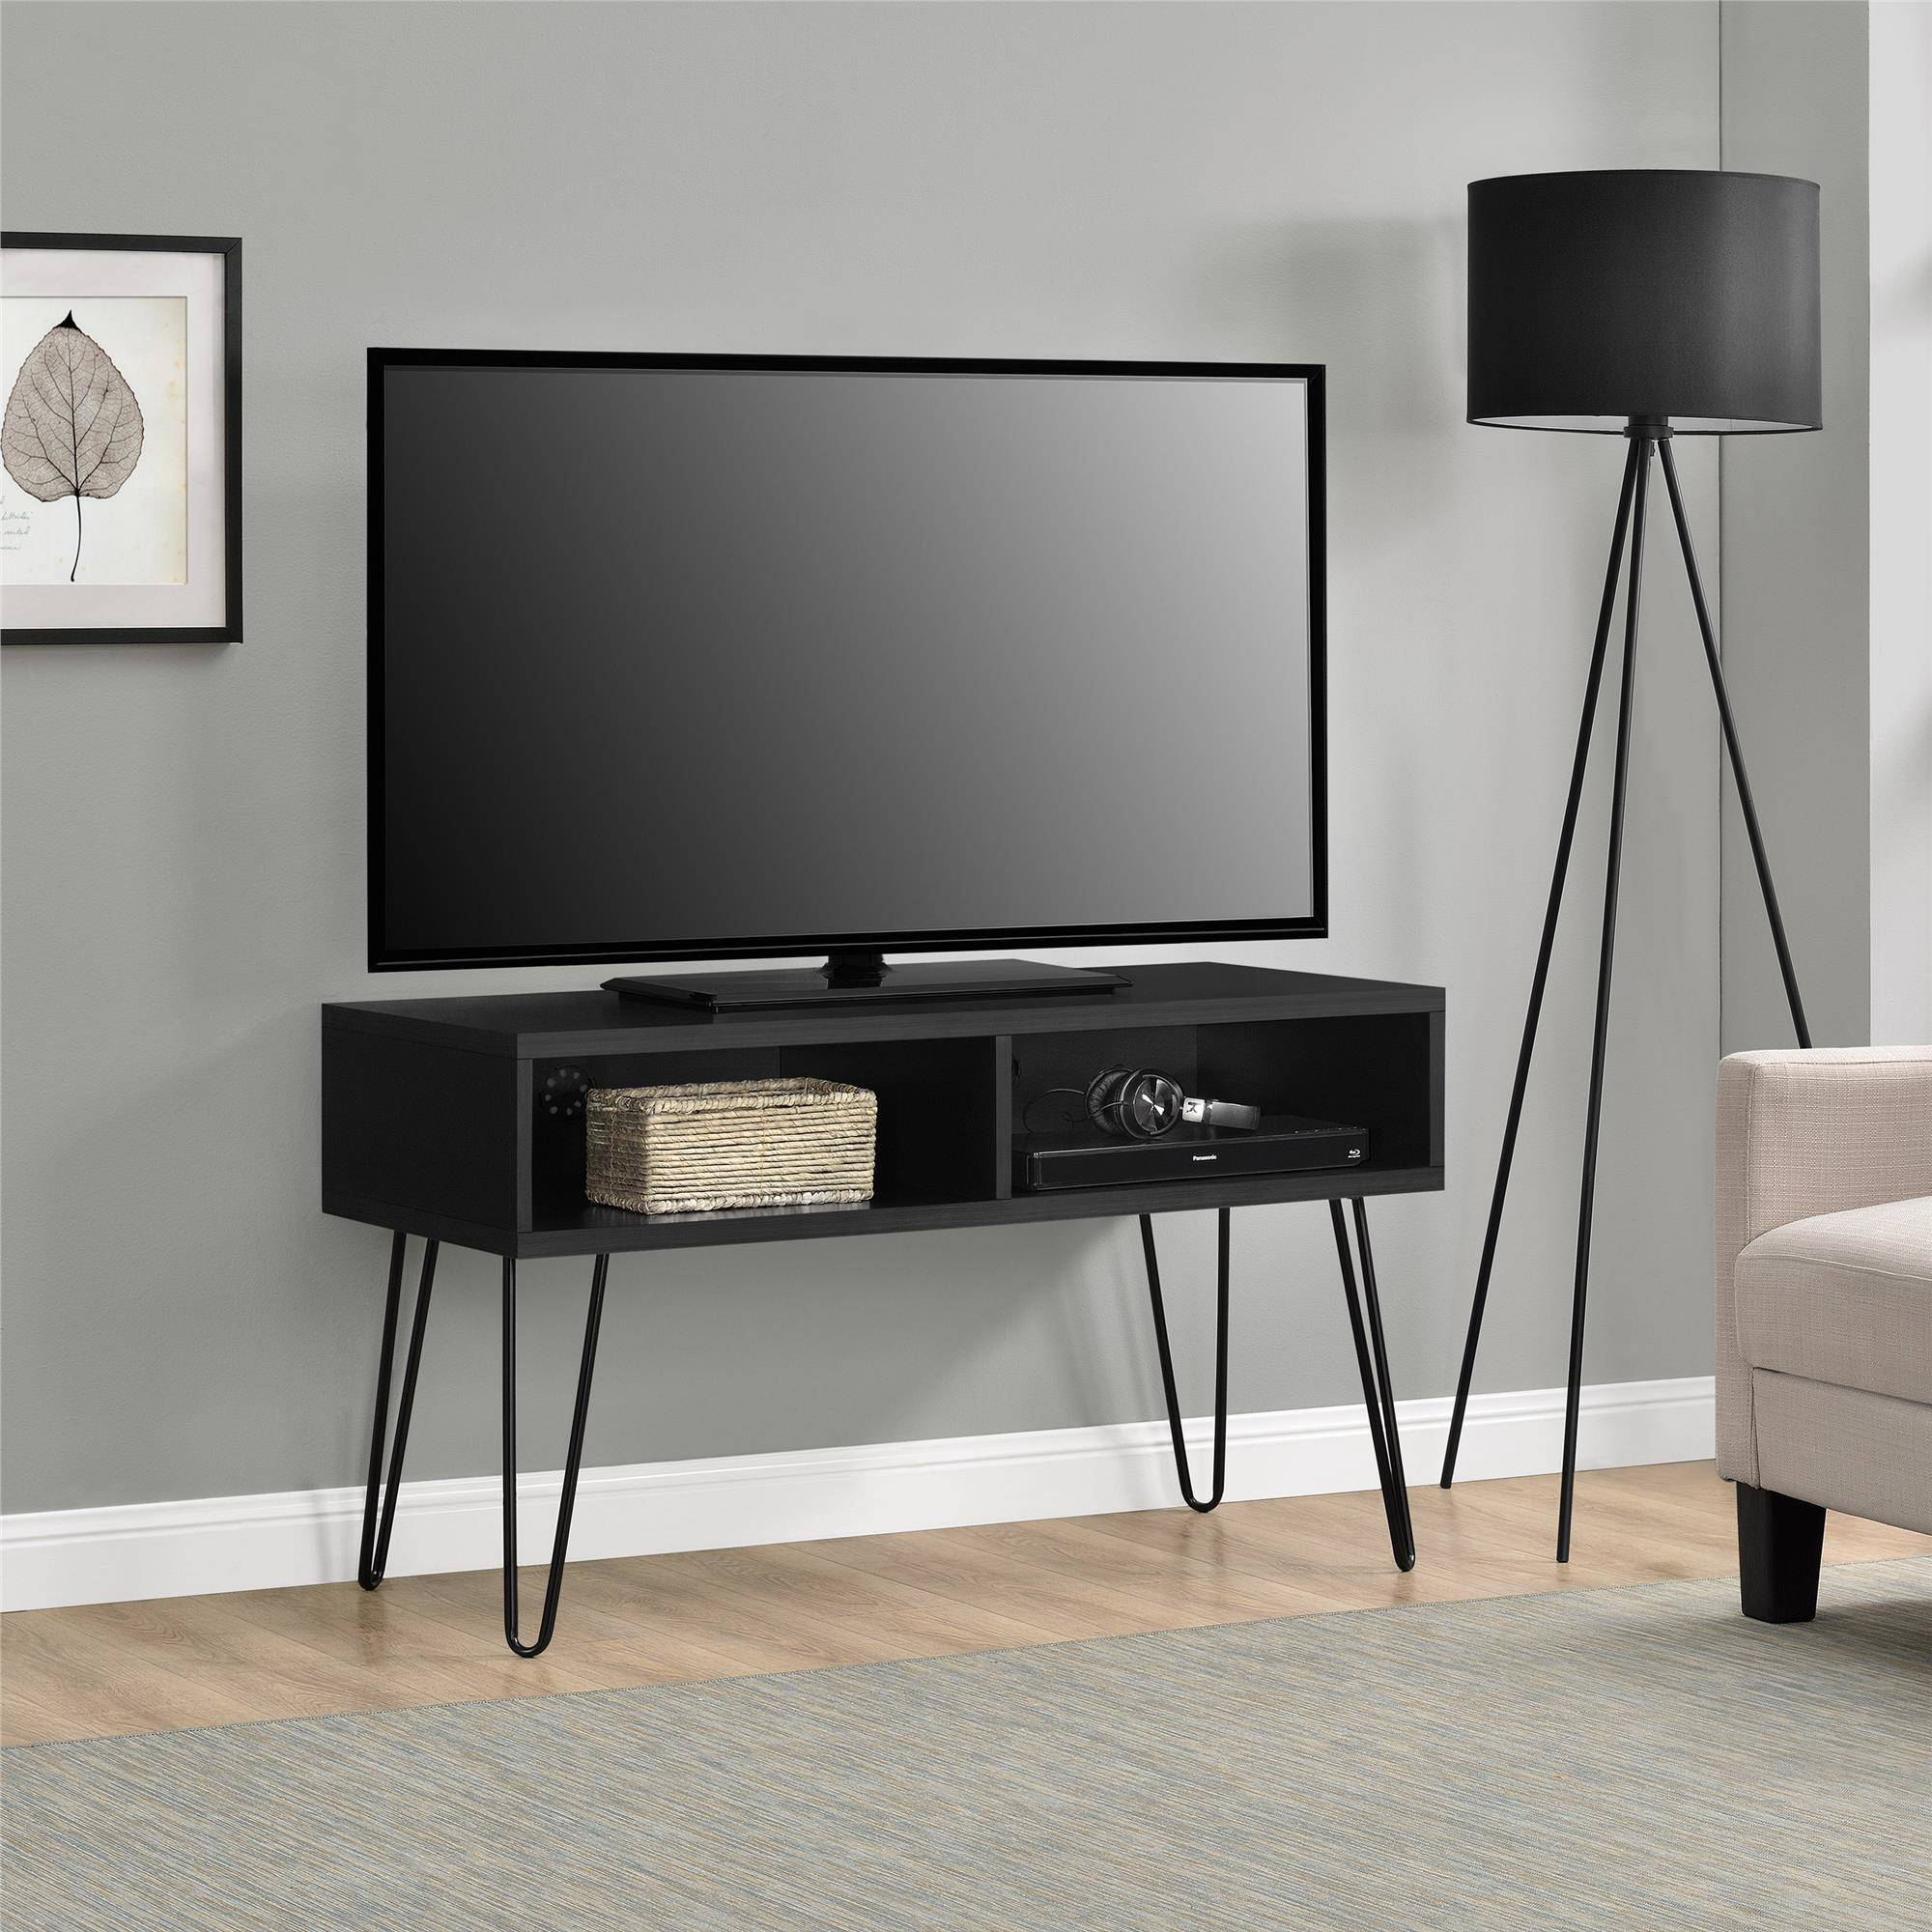 "Mainstays Retro TV Stand for TVs up to 42"", Multiple Colors"